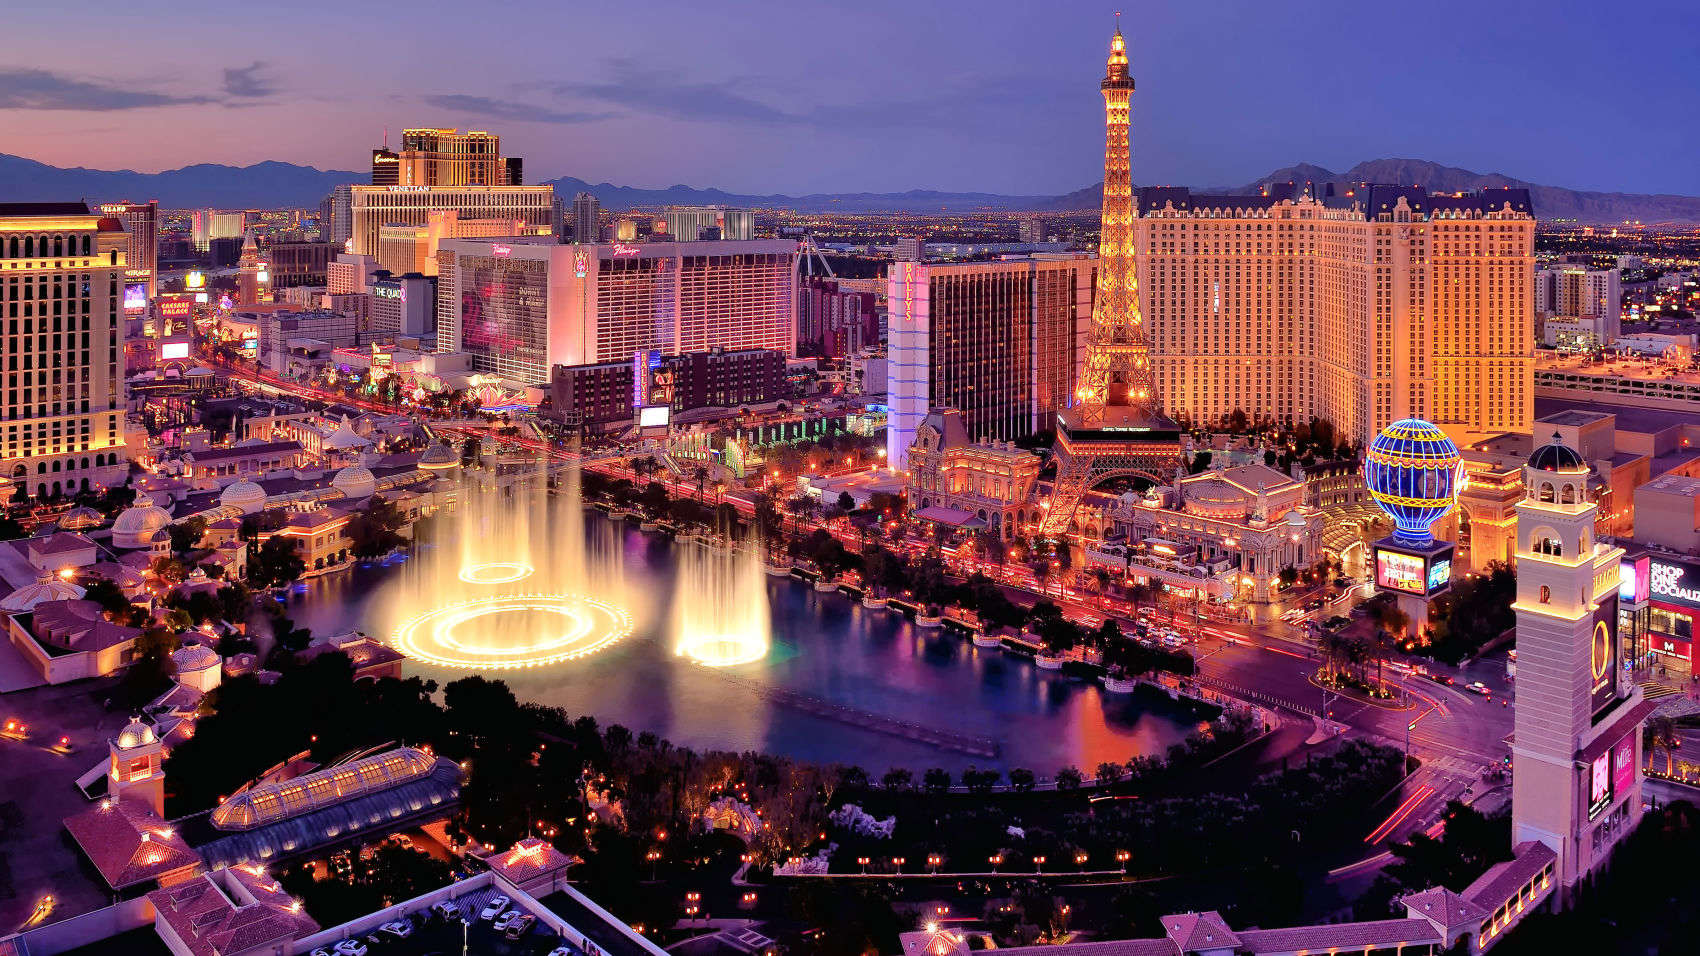 Things to See & Do in Las Vegas | Hotels.com on north dakota zone map, cedar city zone map, new england zone map, lubbock zone map, washoe county school district zone map, nevada zone map, san diego zone map, missouri zone map, miami zone map, new mexico zone map, fort worth zone map, massachusetts zone map, stockholm zone map, columbus zone map, redding zone map, spokane zone map, portland zone map, fresno zone map, boulder zone map, riverside county zone map,